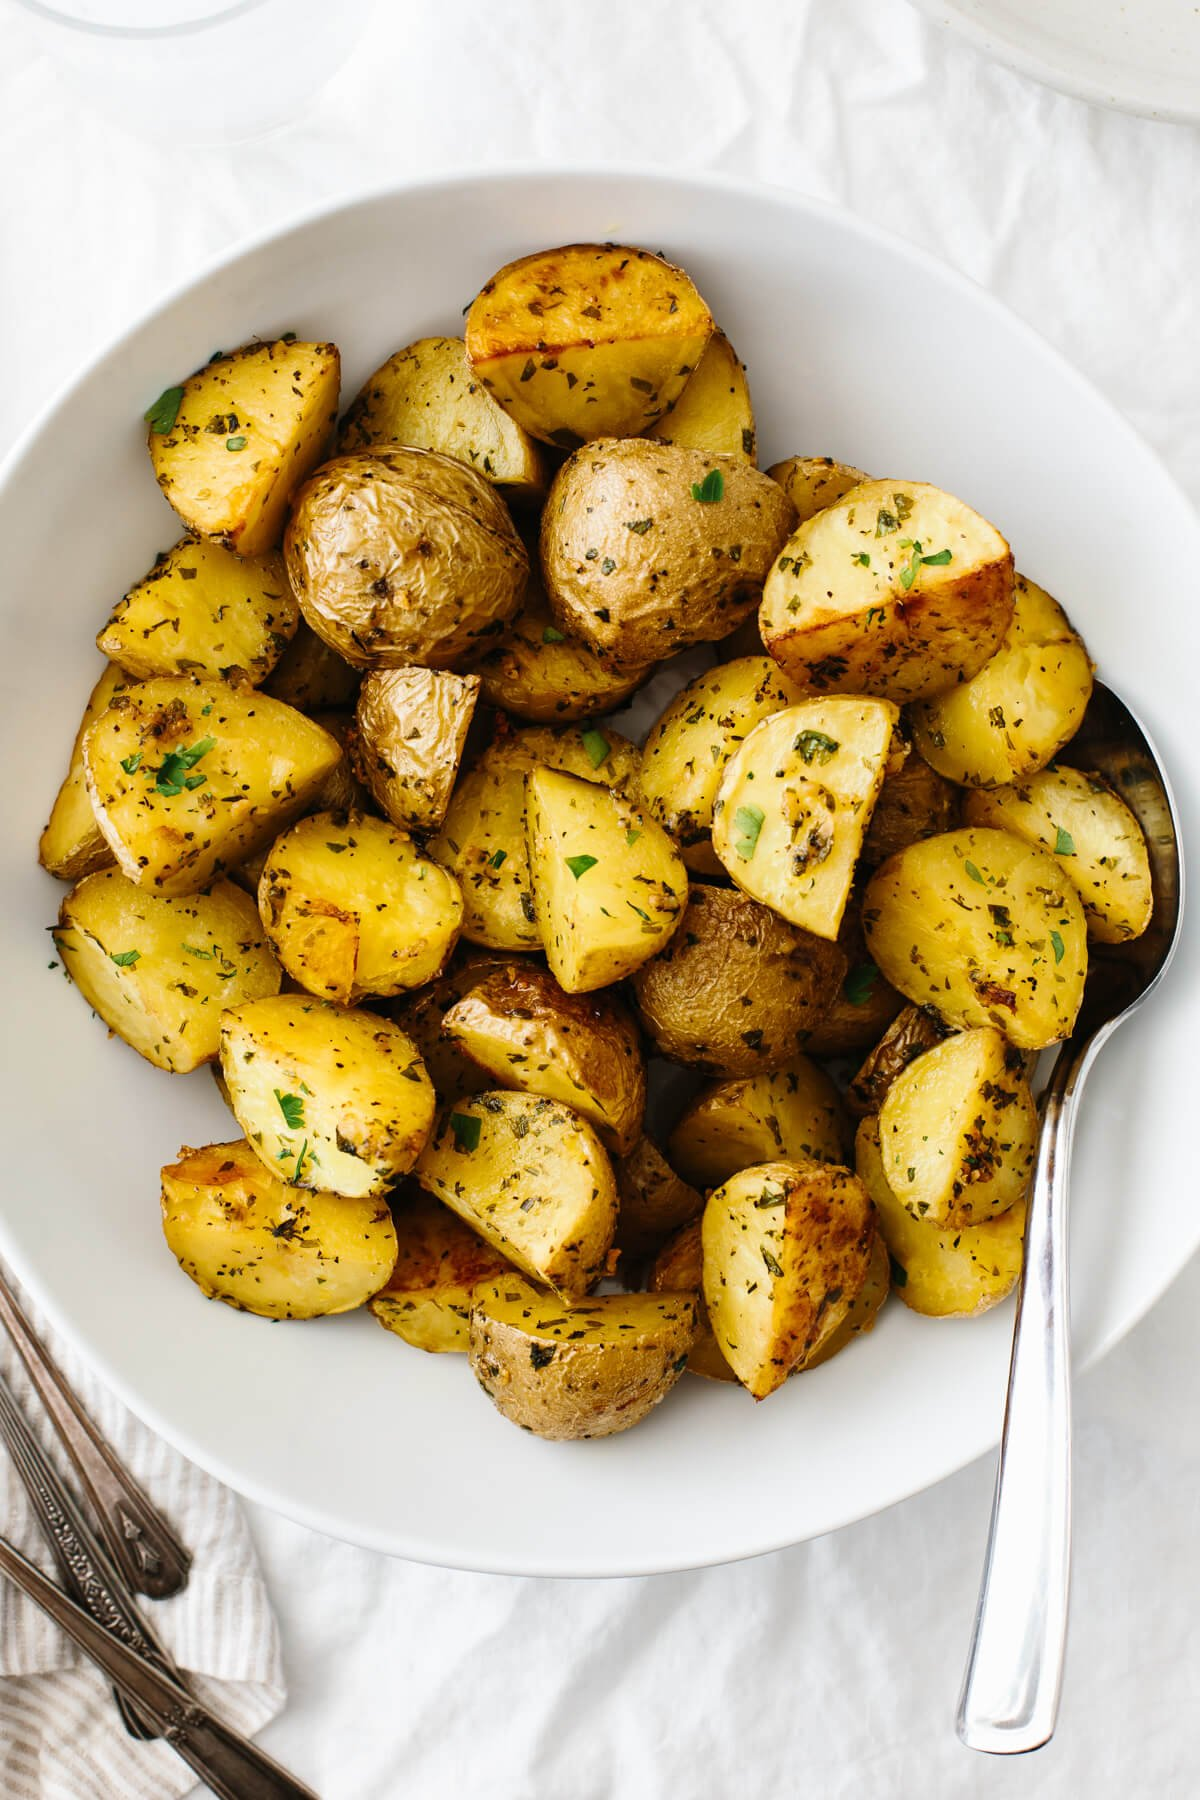 Garlic herb roasted potatoes in a white serving bowl.